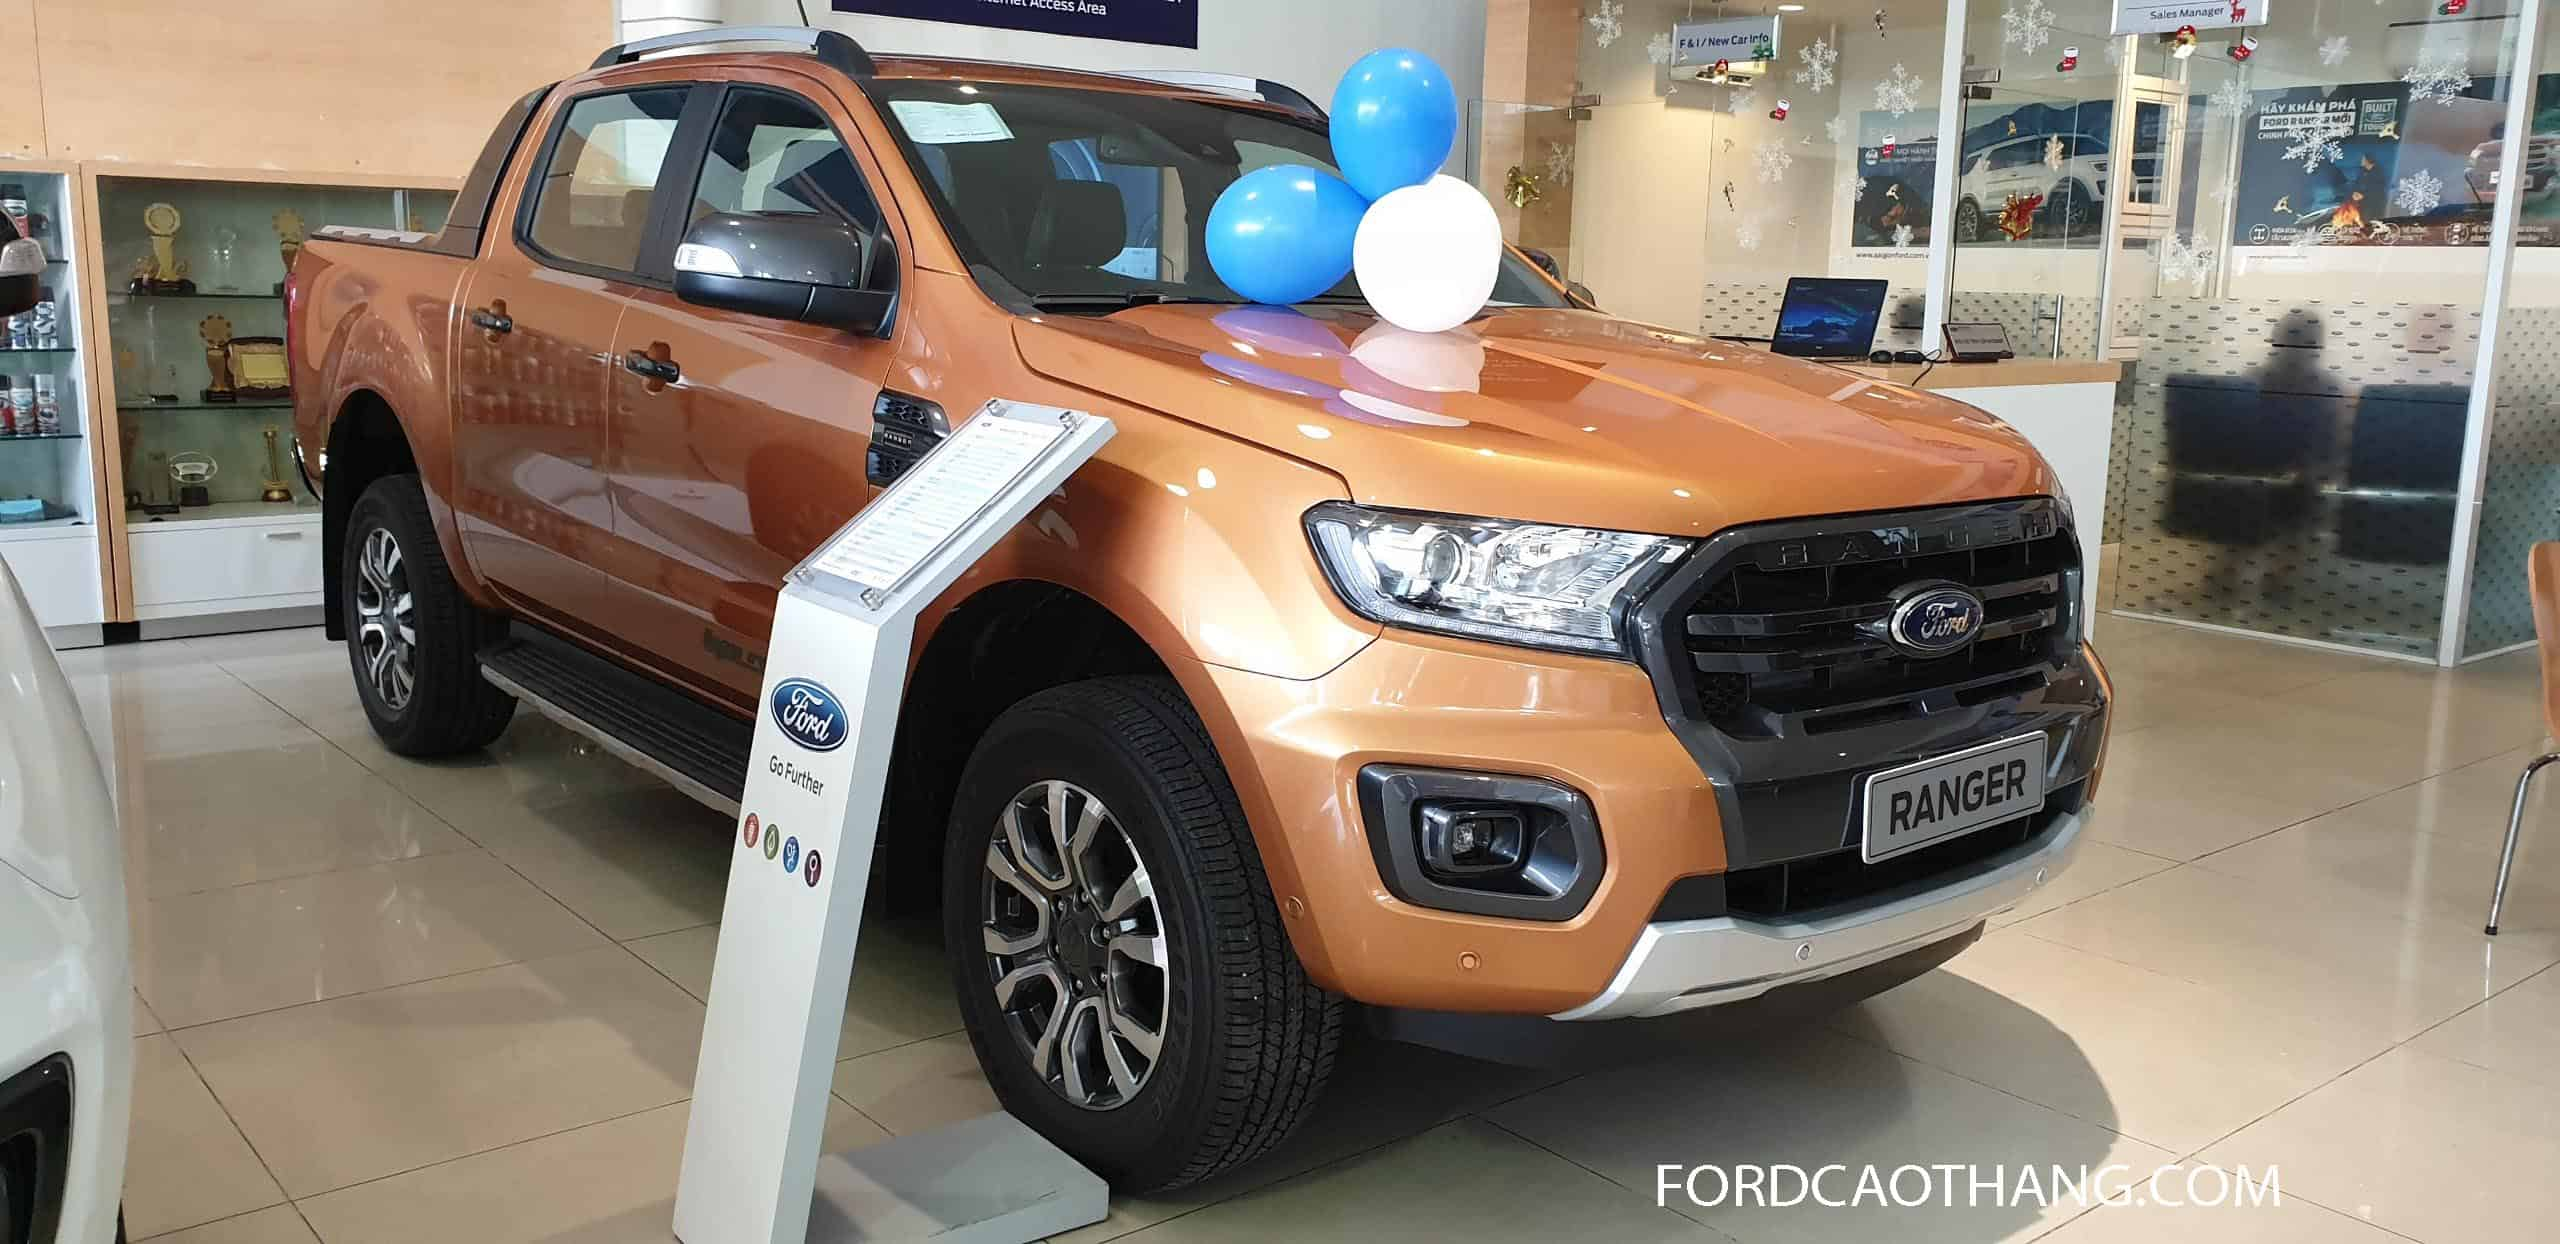 Thiết kế xe Ford Ranger 2020